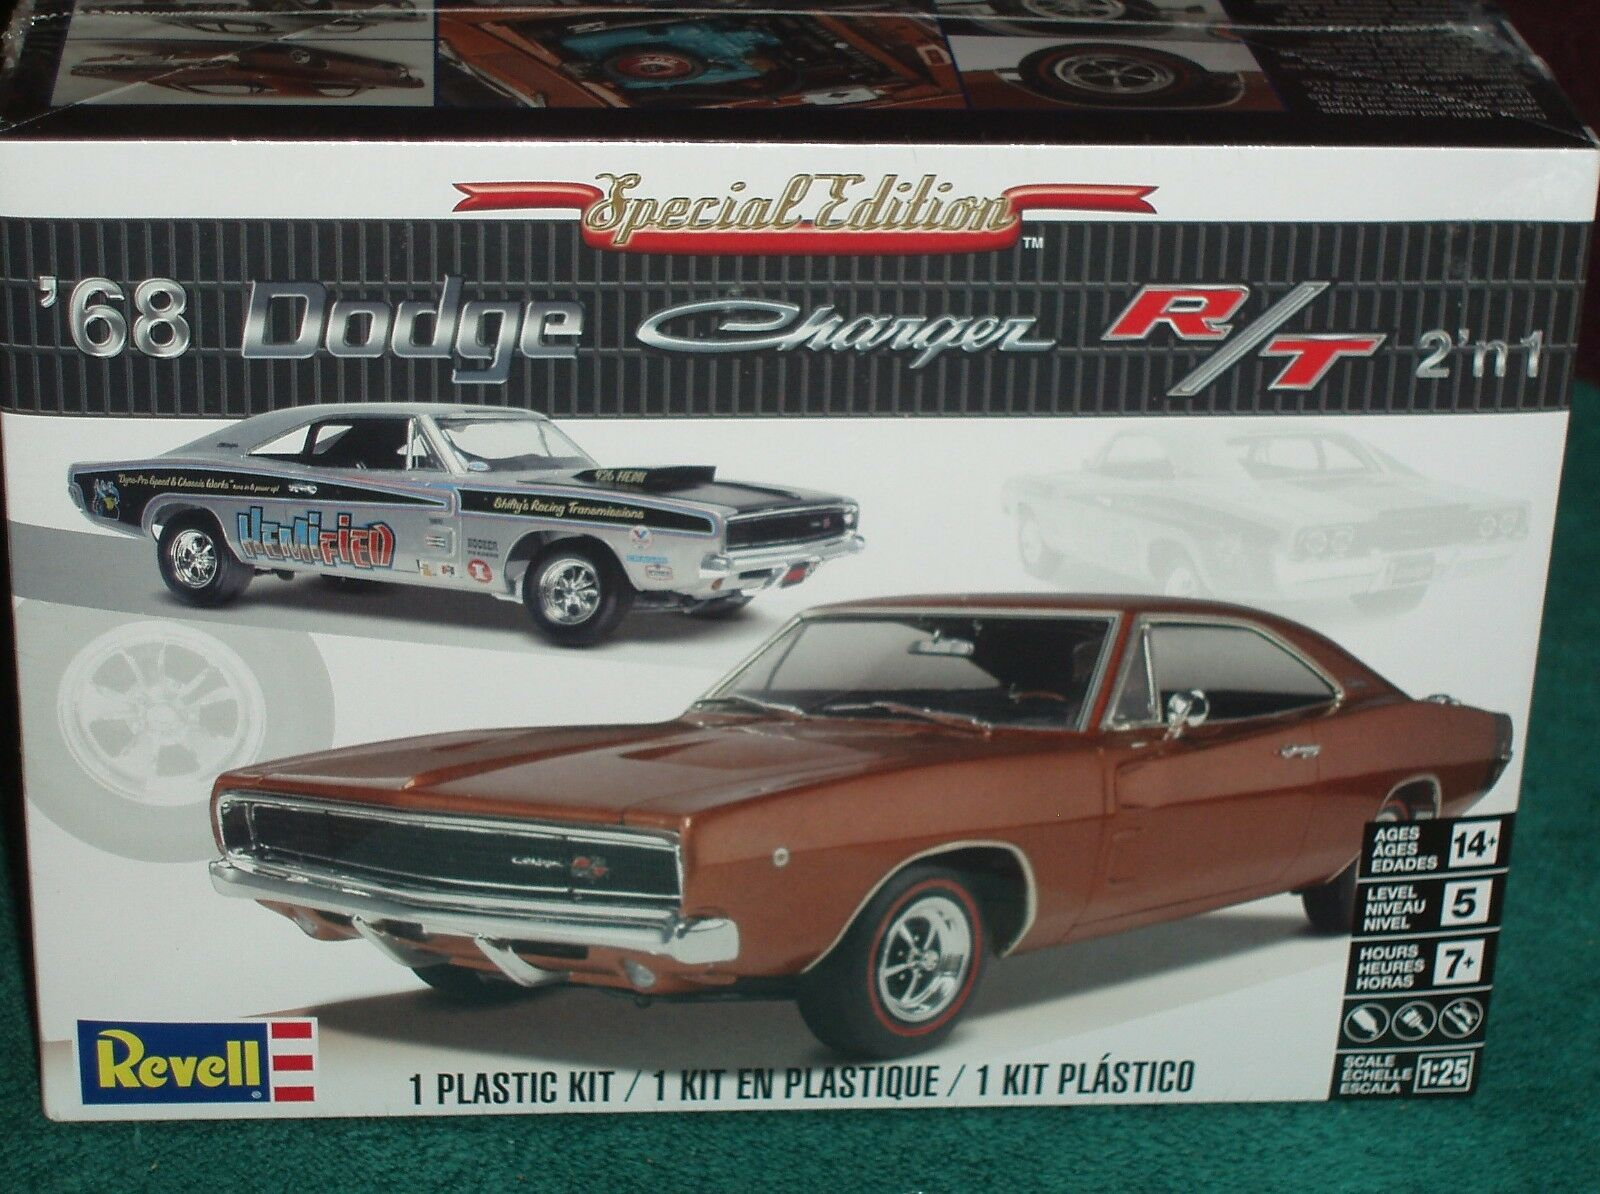 Revell 1968 Dodge Charger RT Hard Top Plastic Model Kit 1 25 Skill Level 5